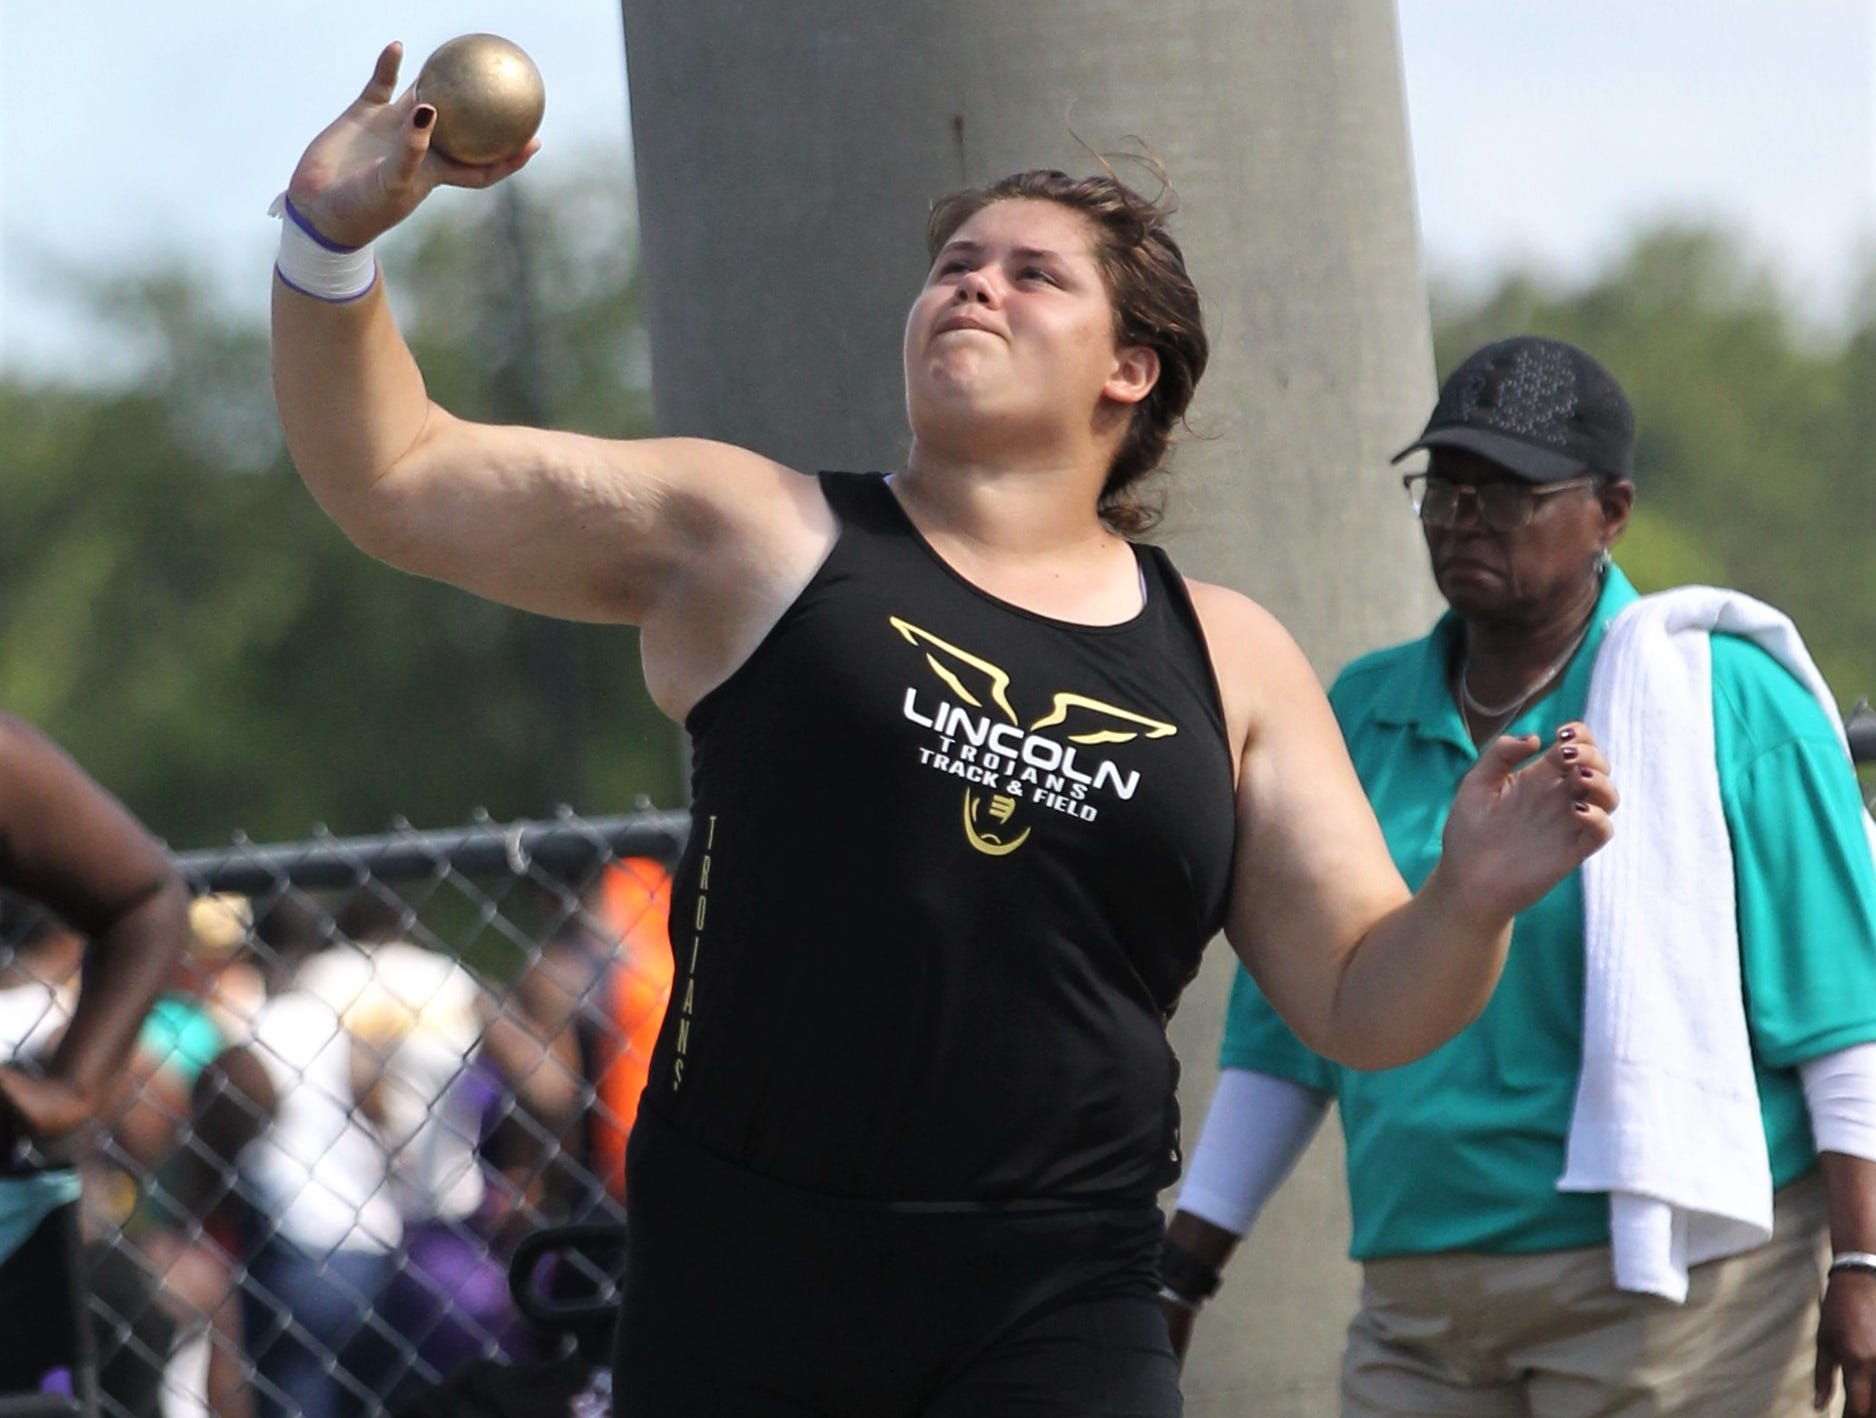 Lincoln junior Macy Kelley throws shot put during the FHSAA Track and Field State Championships at UNF's Hodges Stadium in Jacksonville on May 4, 2019.